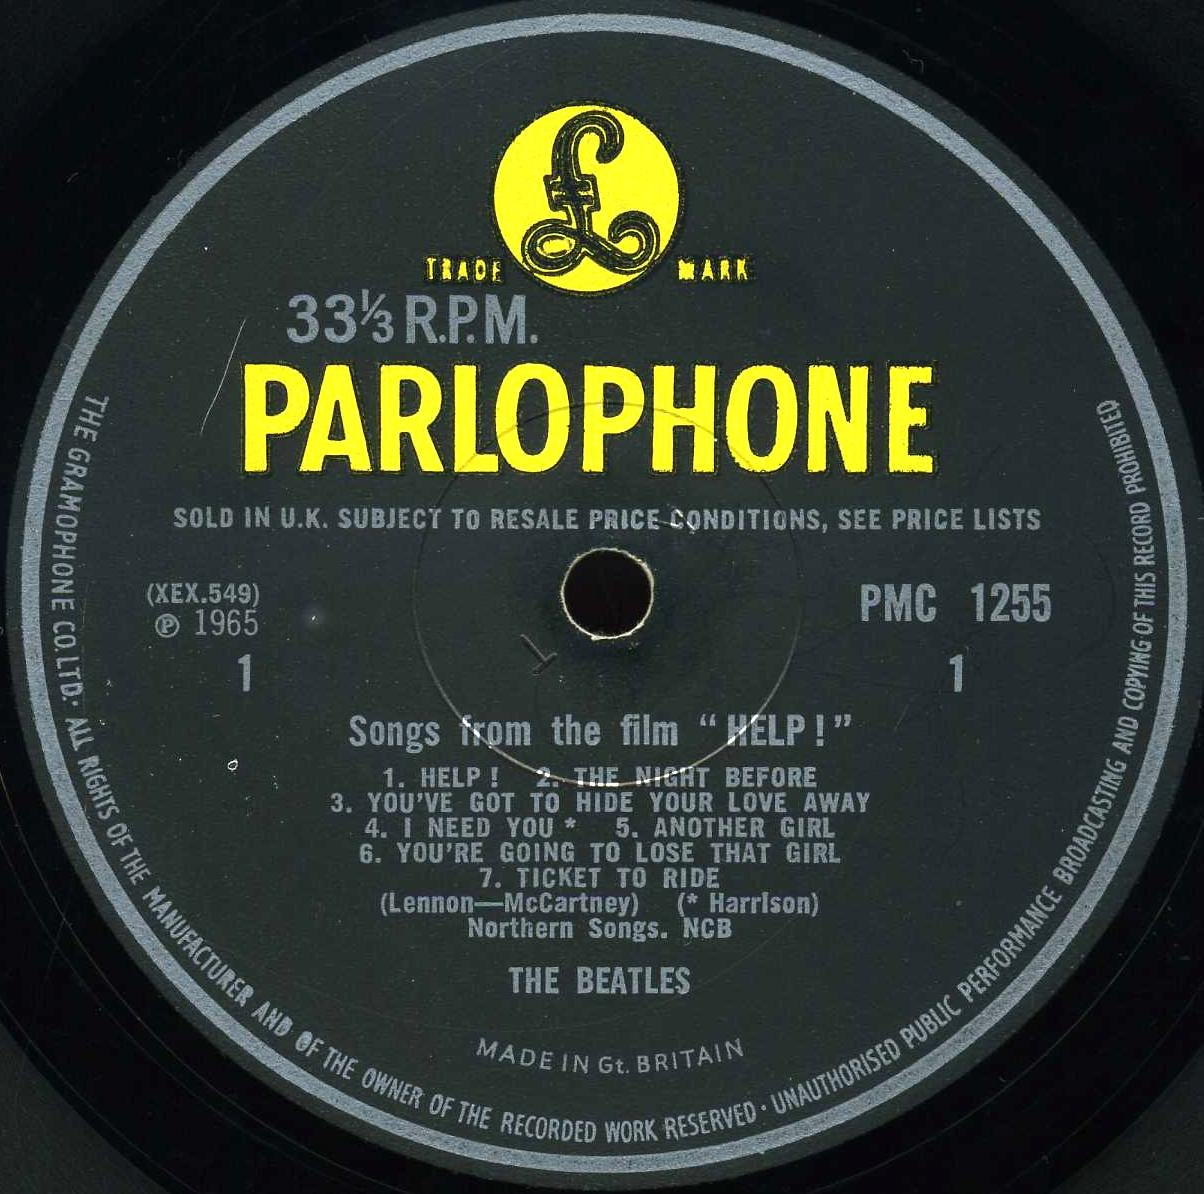 the beatles collection help parlophone pmc 1255 variation b other of the original labels used a thick font and the same credit indicator for i need you was placed to the right of the song title